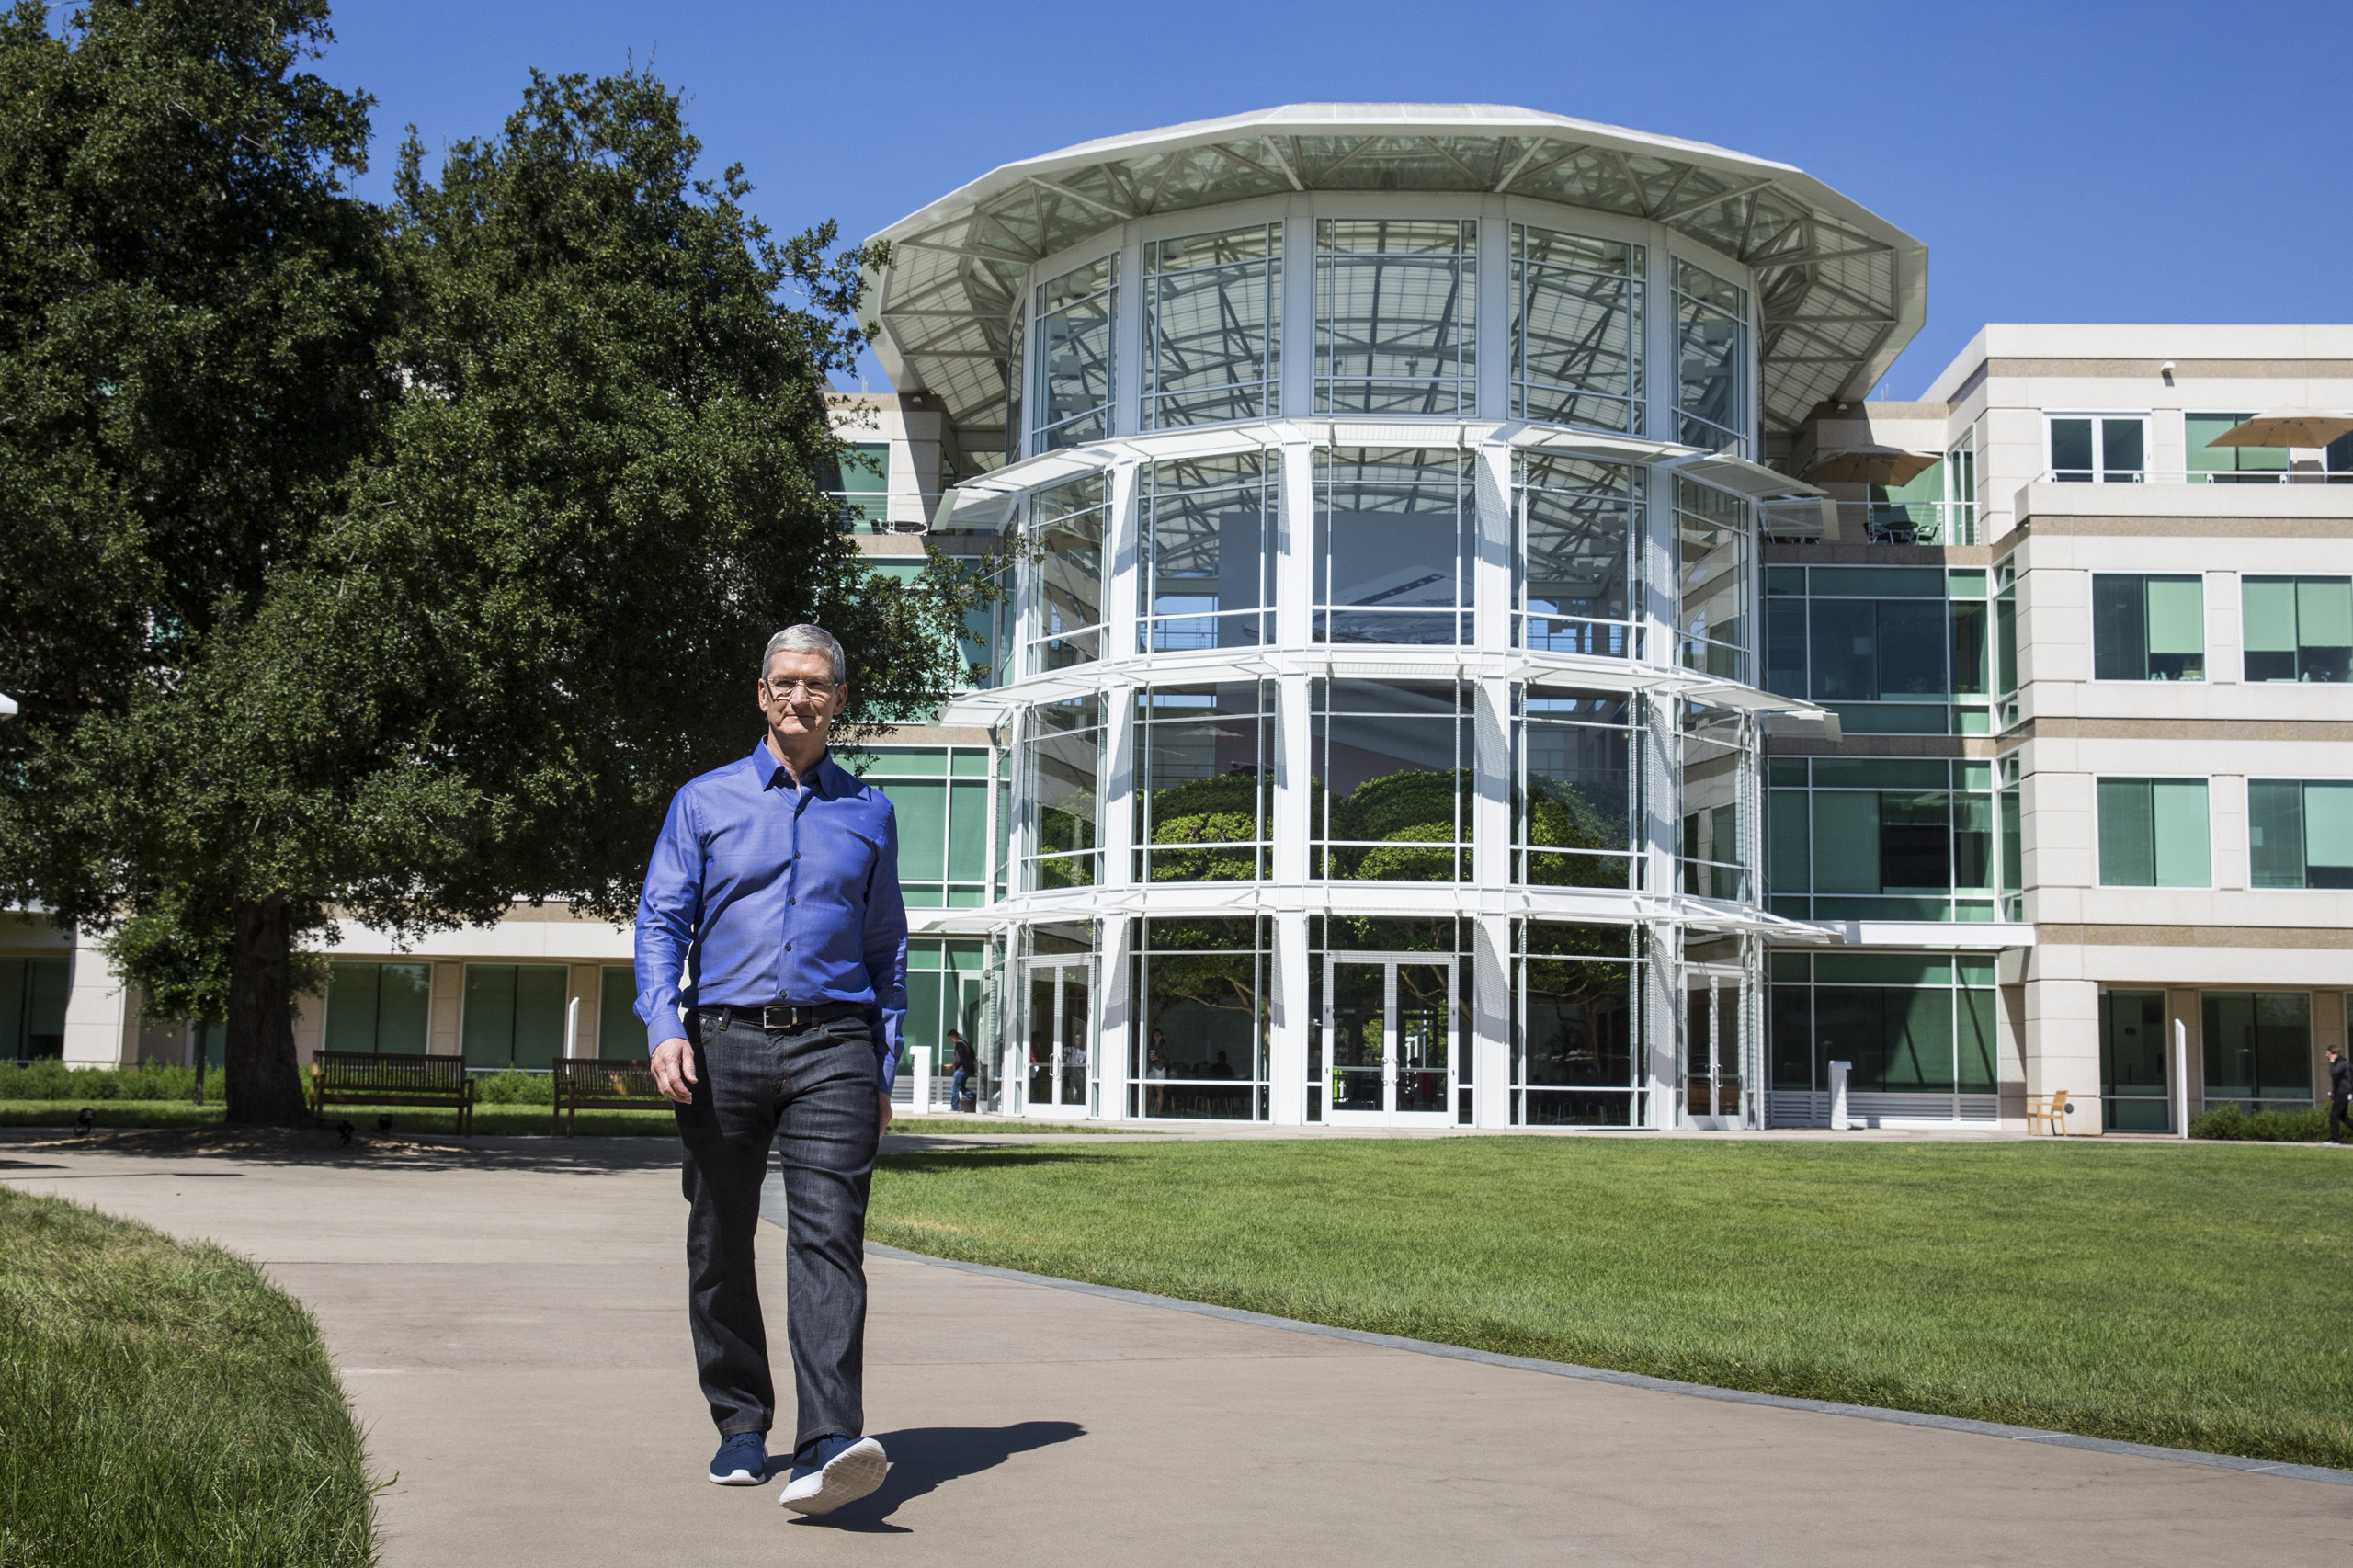 Apple CEO Tim Cook walks through Apple's global headquarters during a photo shoot in Cupertino, Calif. on July 28, 2016.